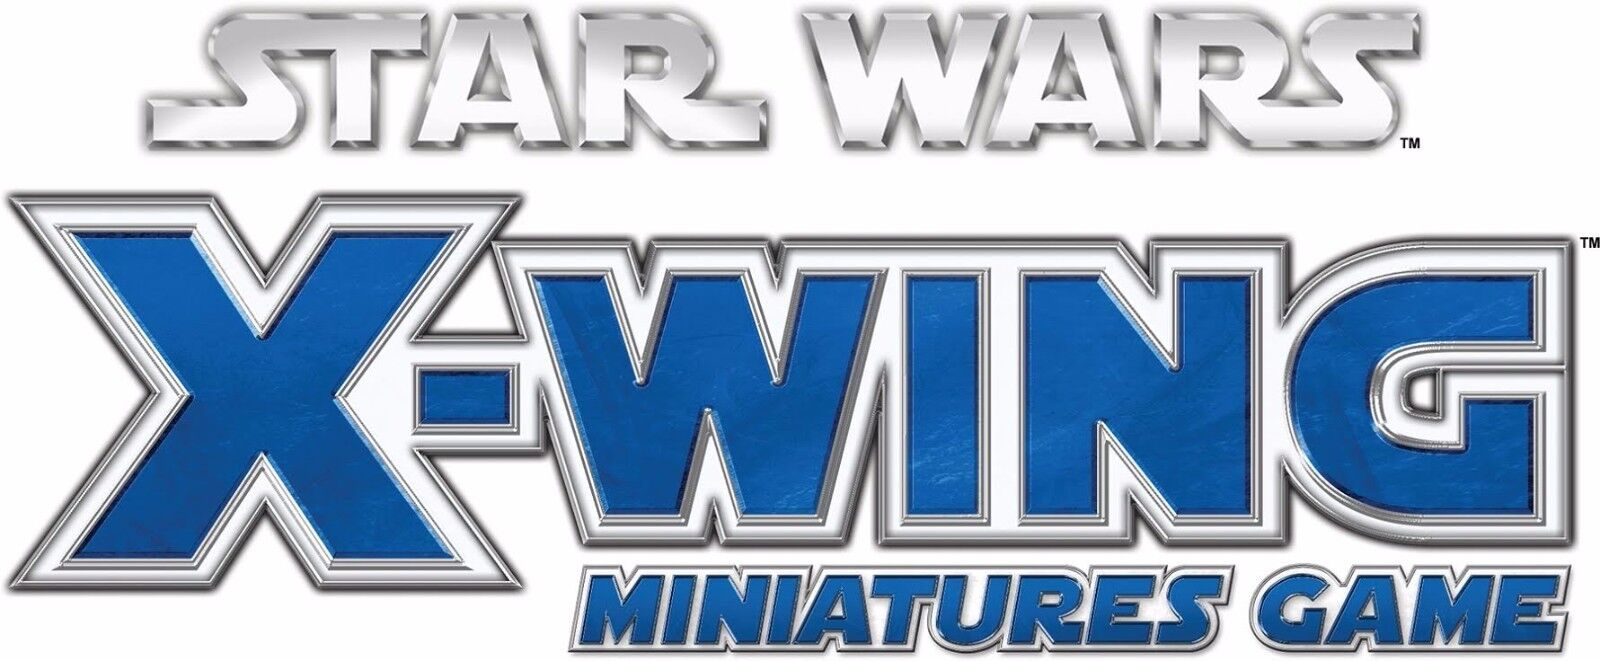 Star Wars X-Wing Ship Ship Ship Miniatures 1.0 (Miniature ONLY) (Usable in 2.0) 8421d0